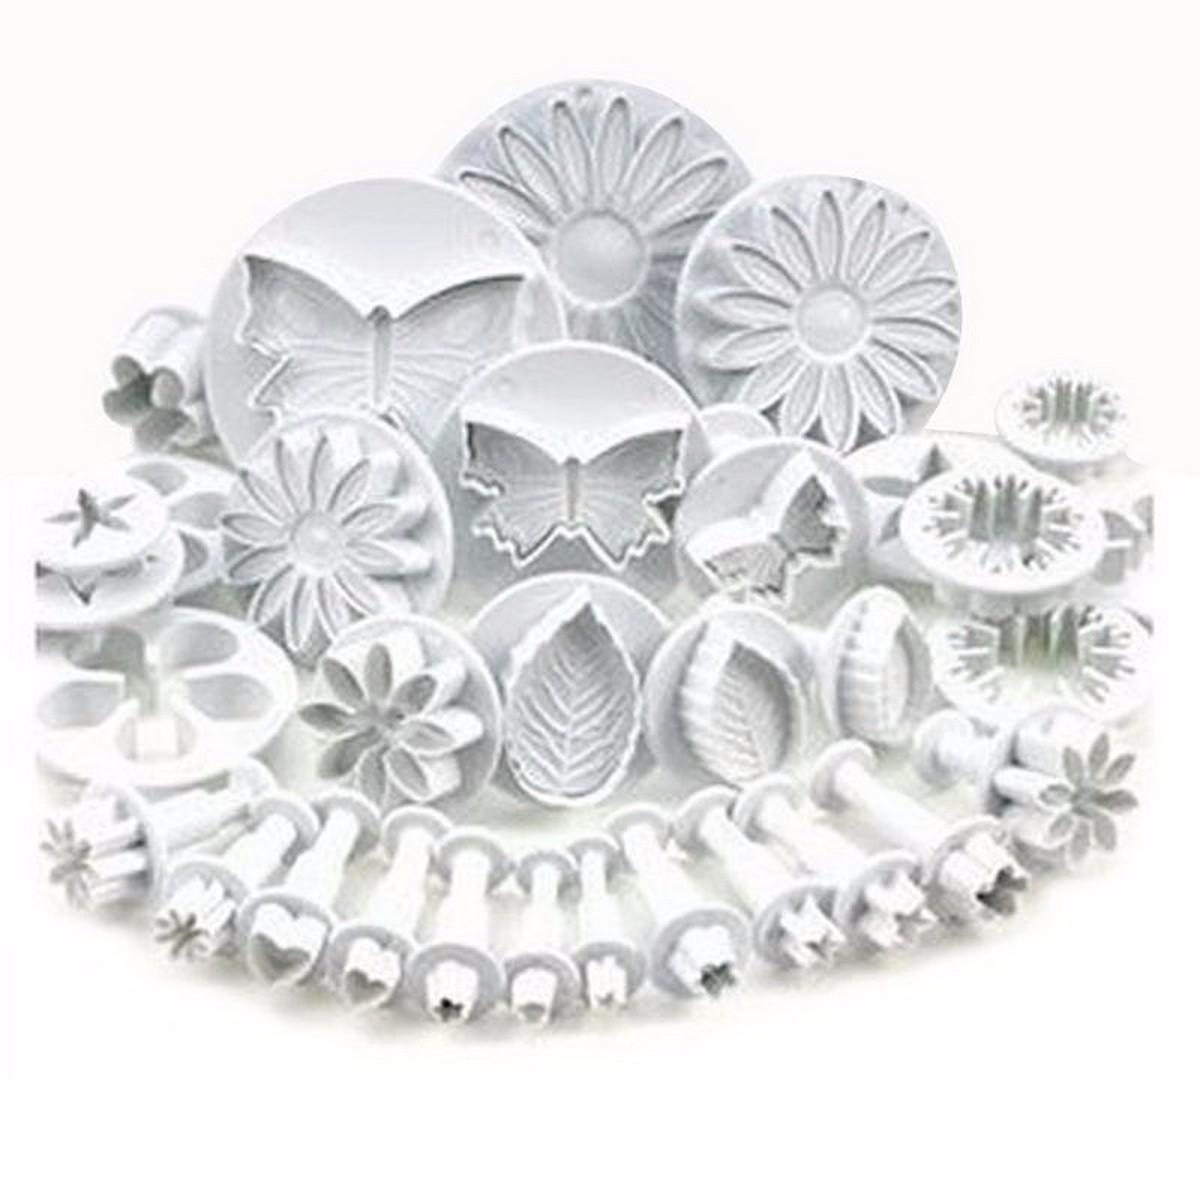 33Pcs/Set Sugarcraft Cake Decorating Fondant Plunger Cutters, Cookie Biscuit Cake Mold Baking Tool Accessories White